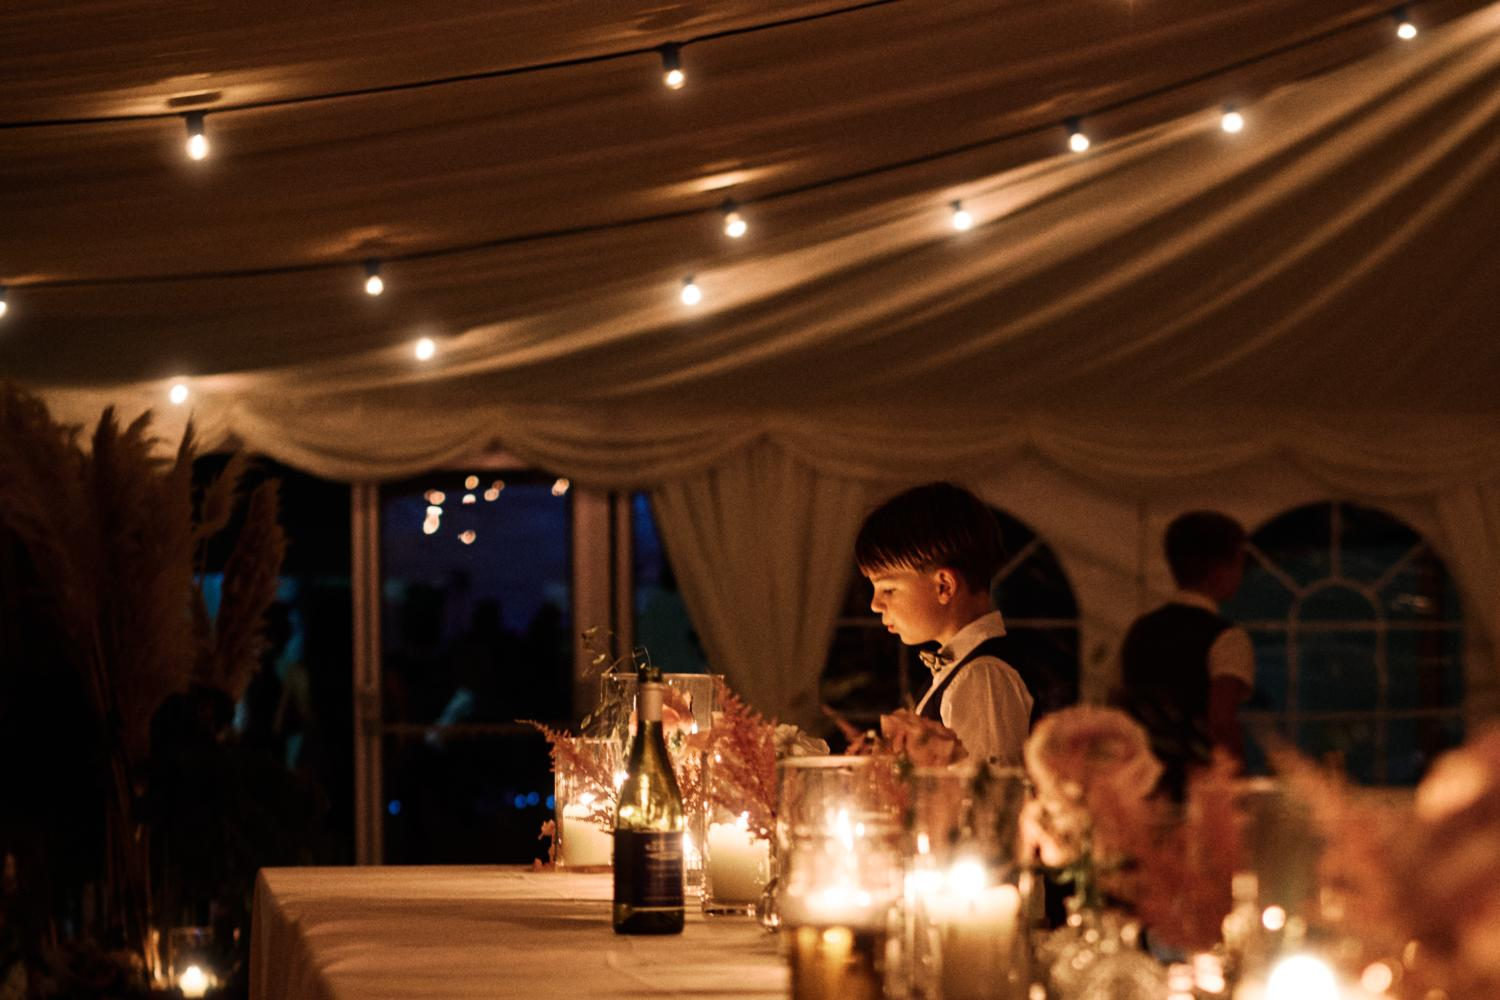 A child plays with candlelight at a marquee wedding